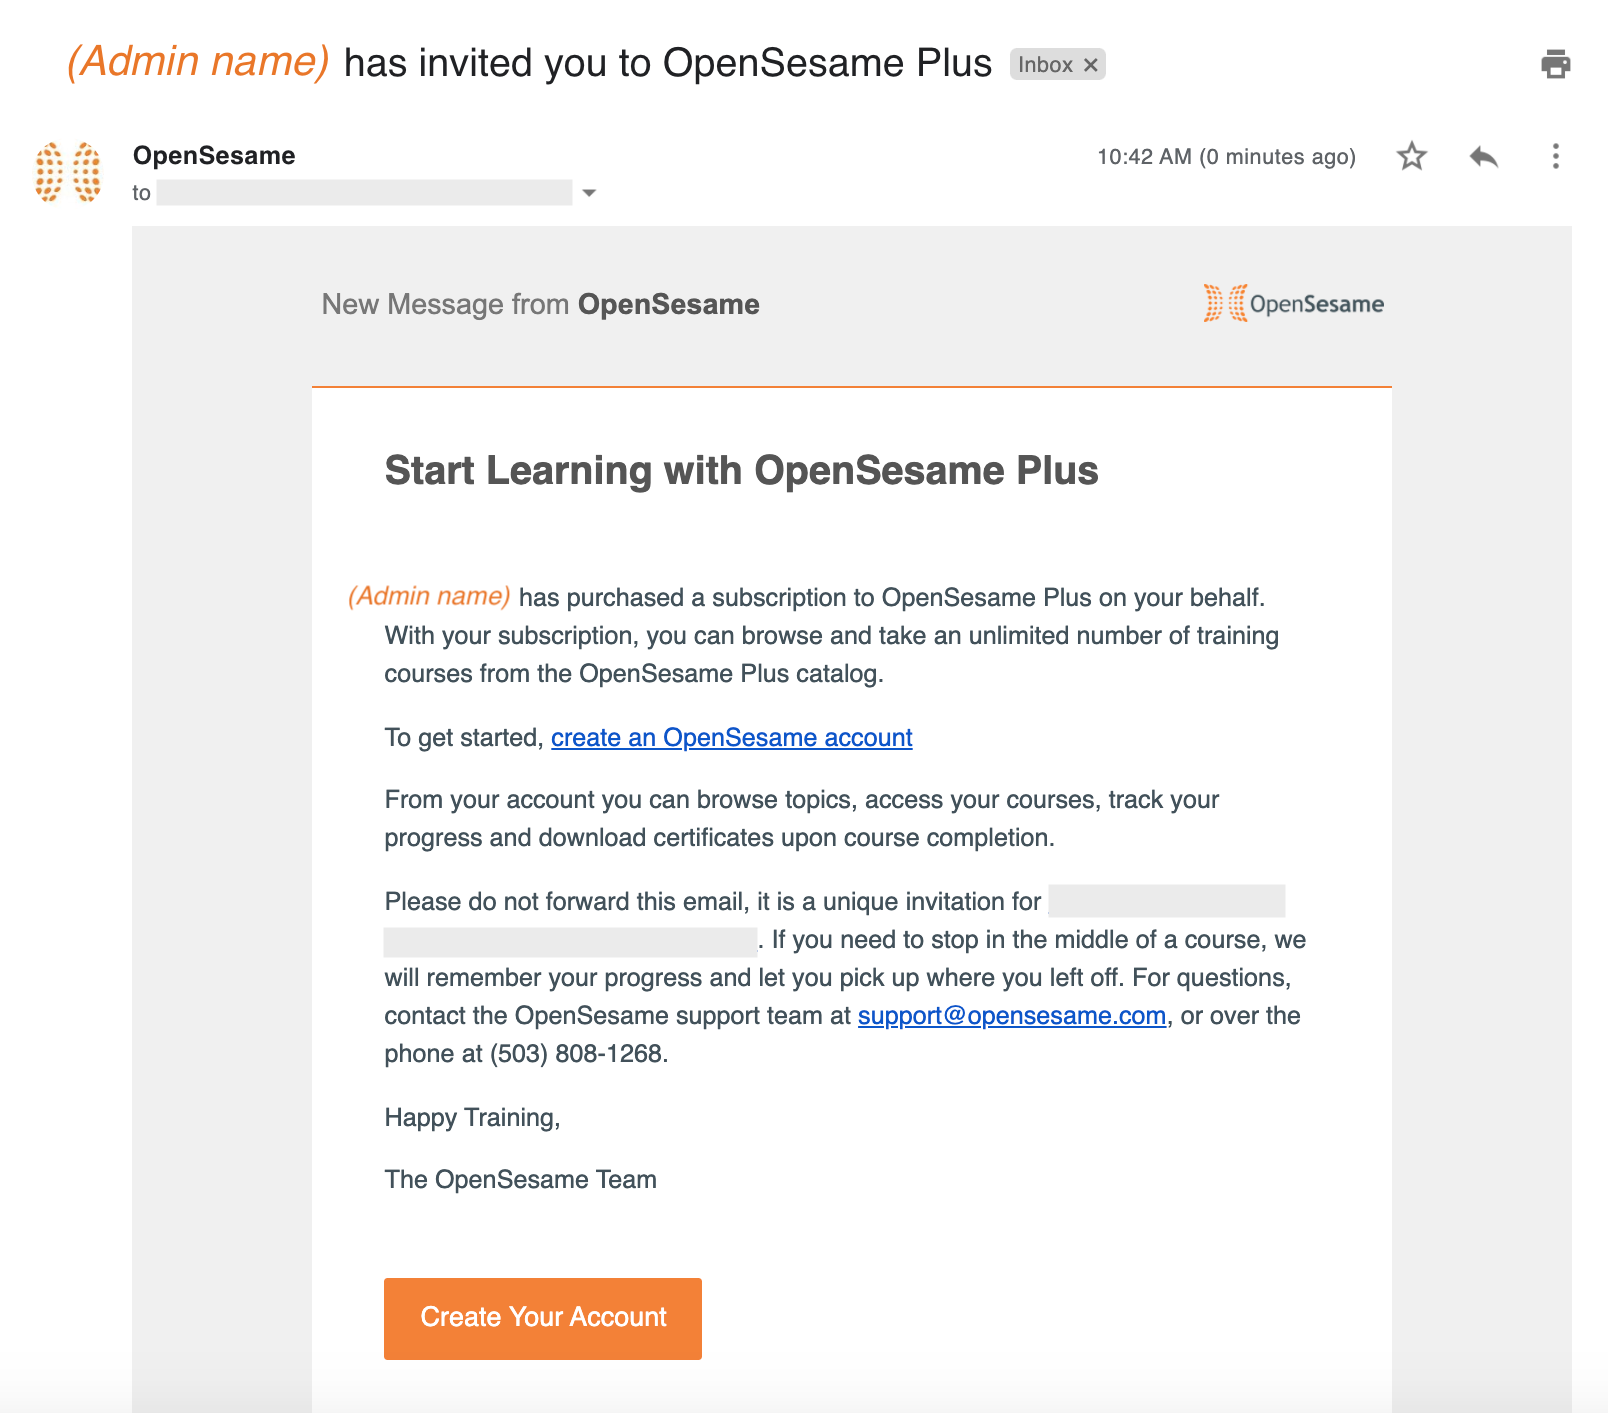 A screenshot of an invitation email to the OpenSesame Plus subscription catalog